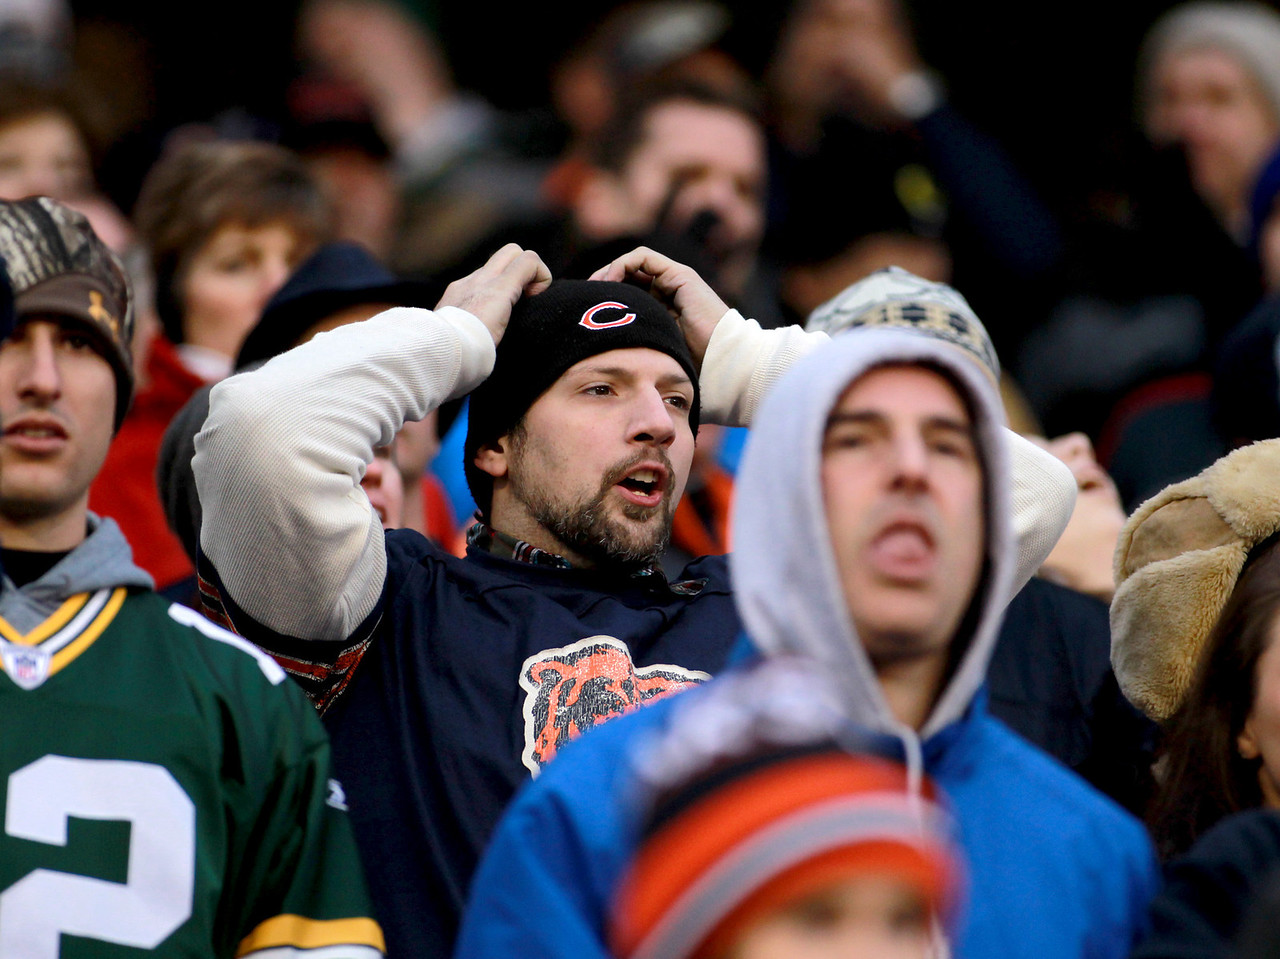 Disappointed Bears fans in the fourth quarter of their 21-13 loss to the Green Bay Packers at Soldier Field Sunday.(Sandy Bressner photo)